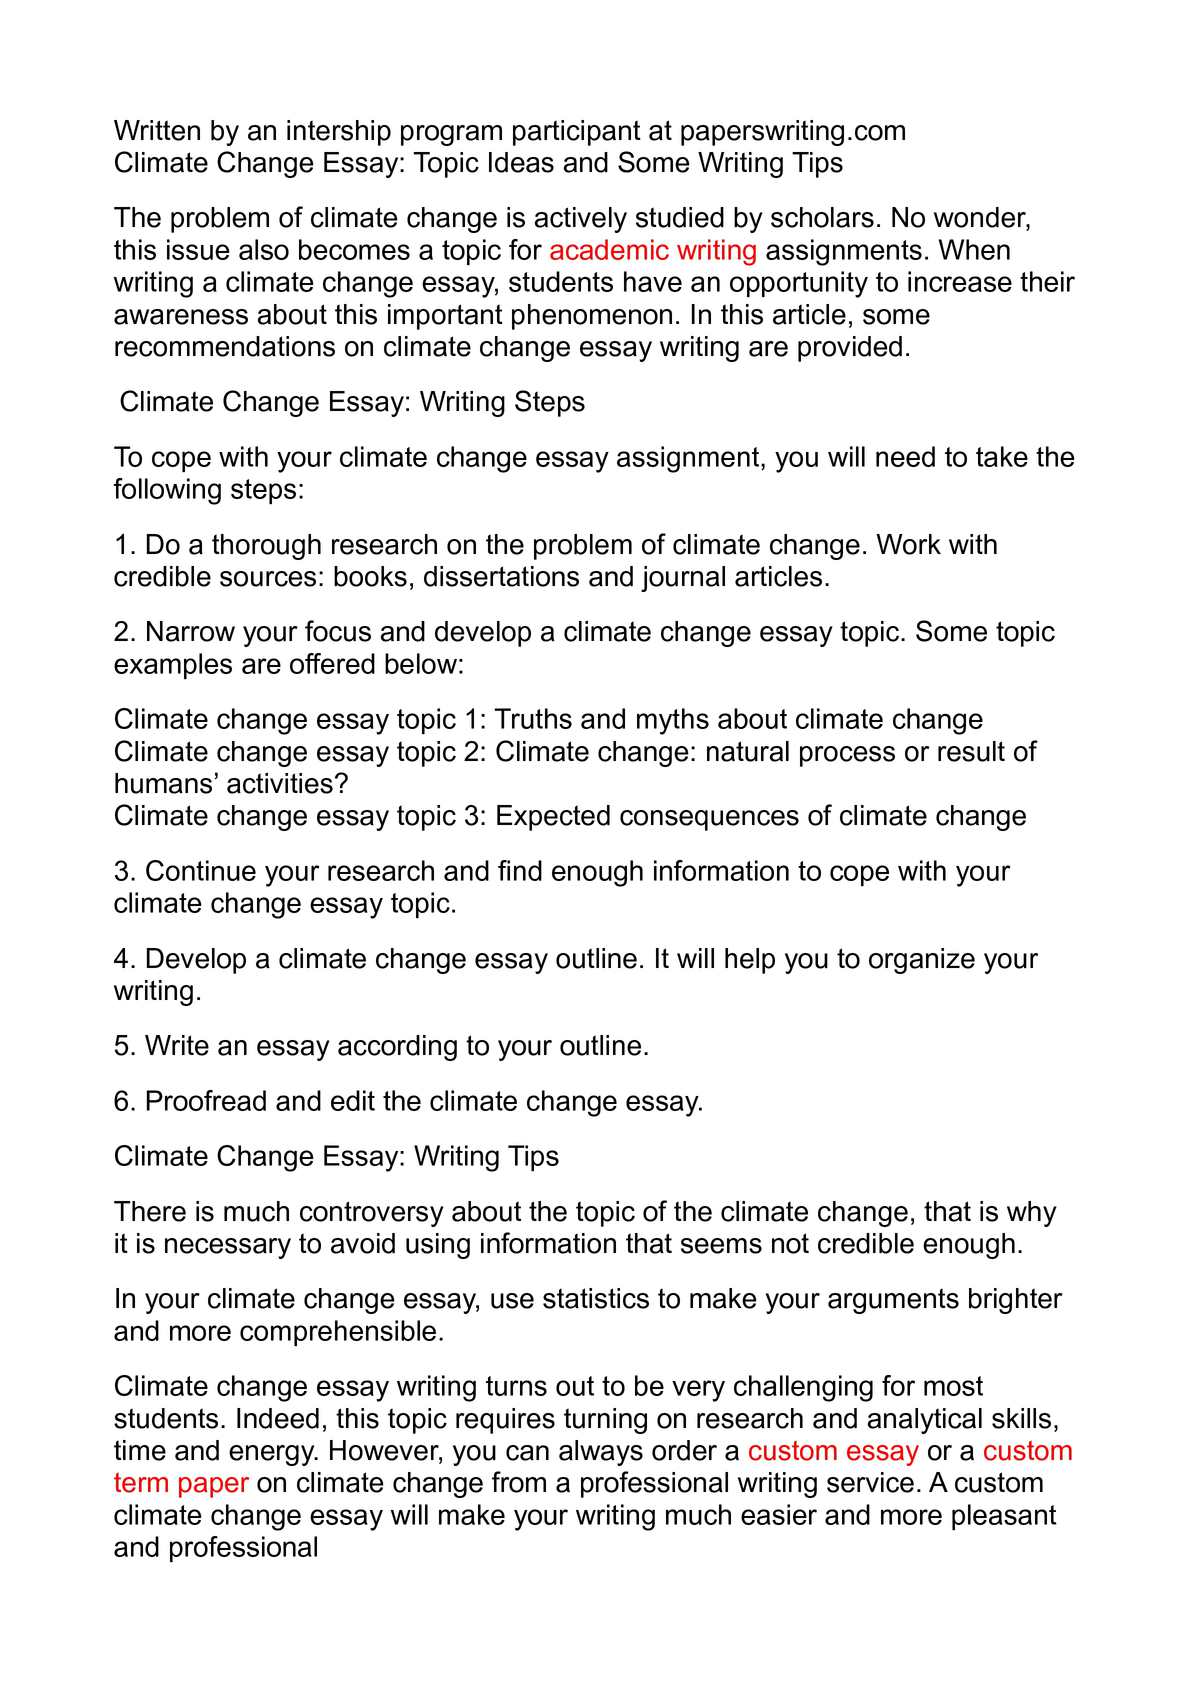 Climate Change Essays Writings